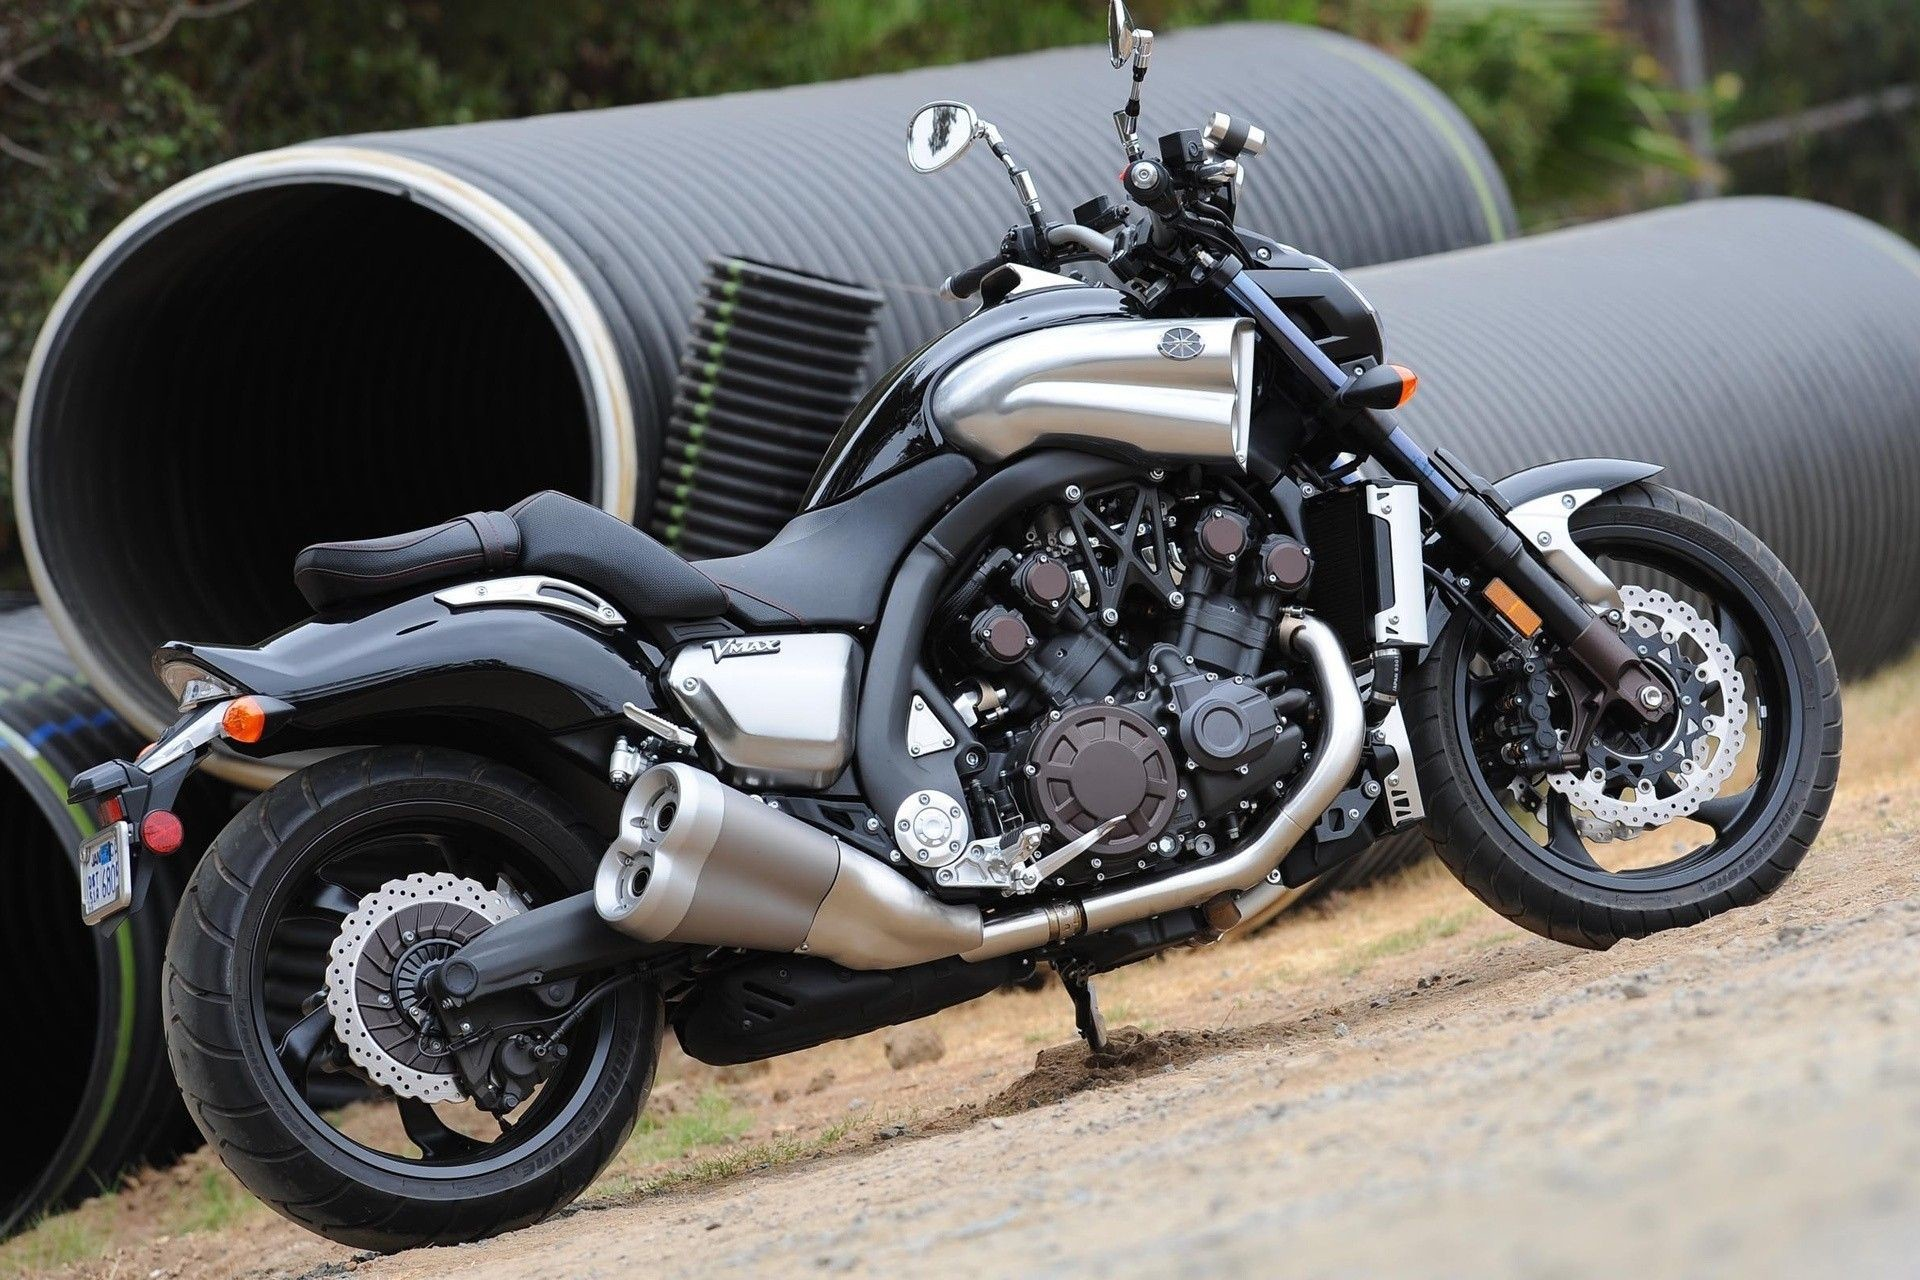 bike tailpipe of the tube ghost rider 2 power power vmax motik . …